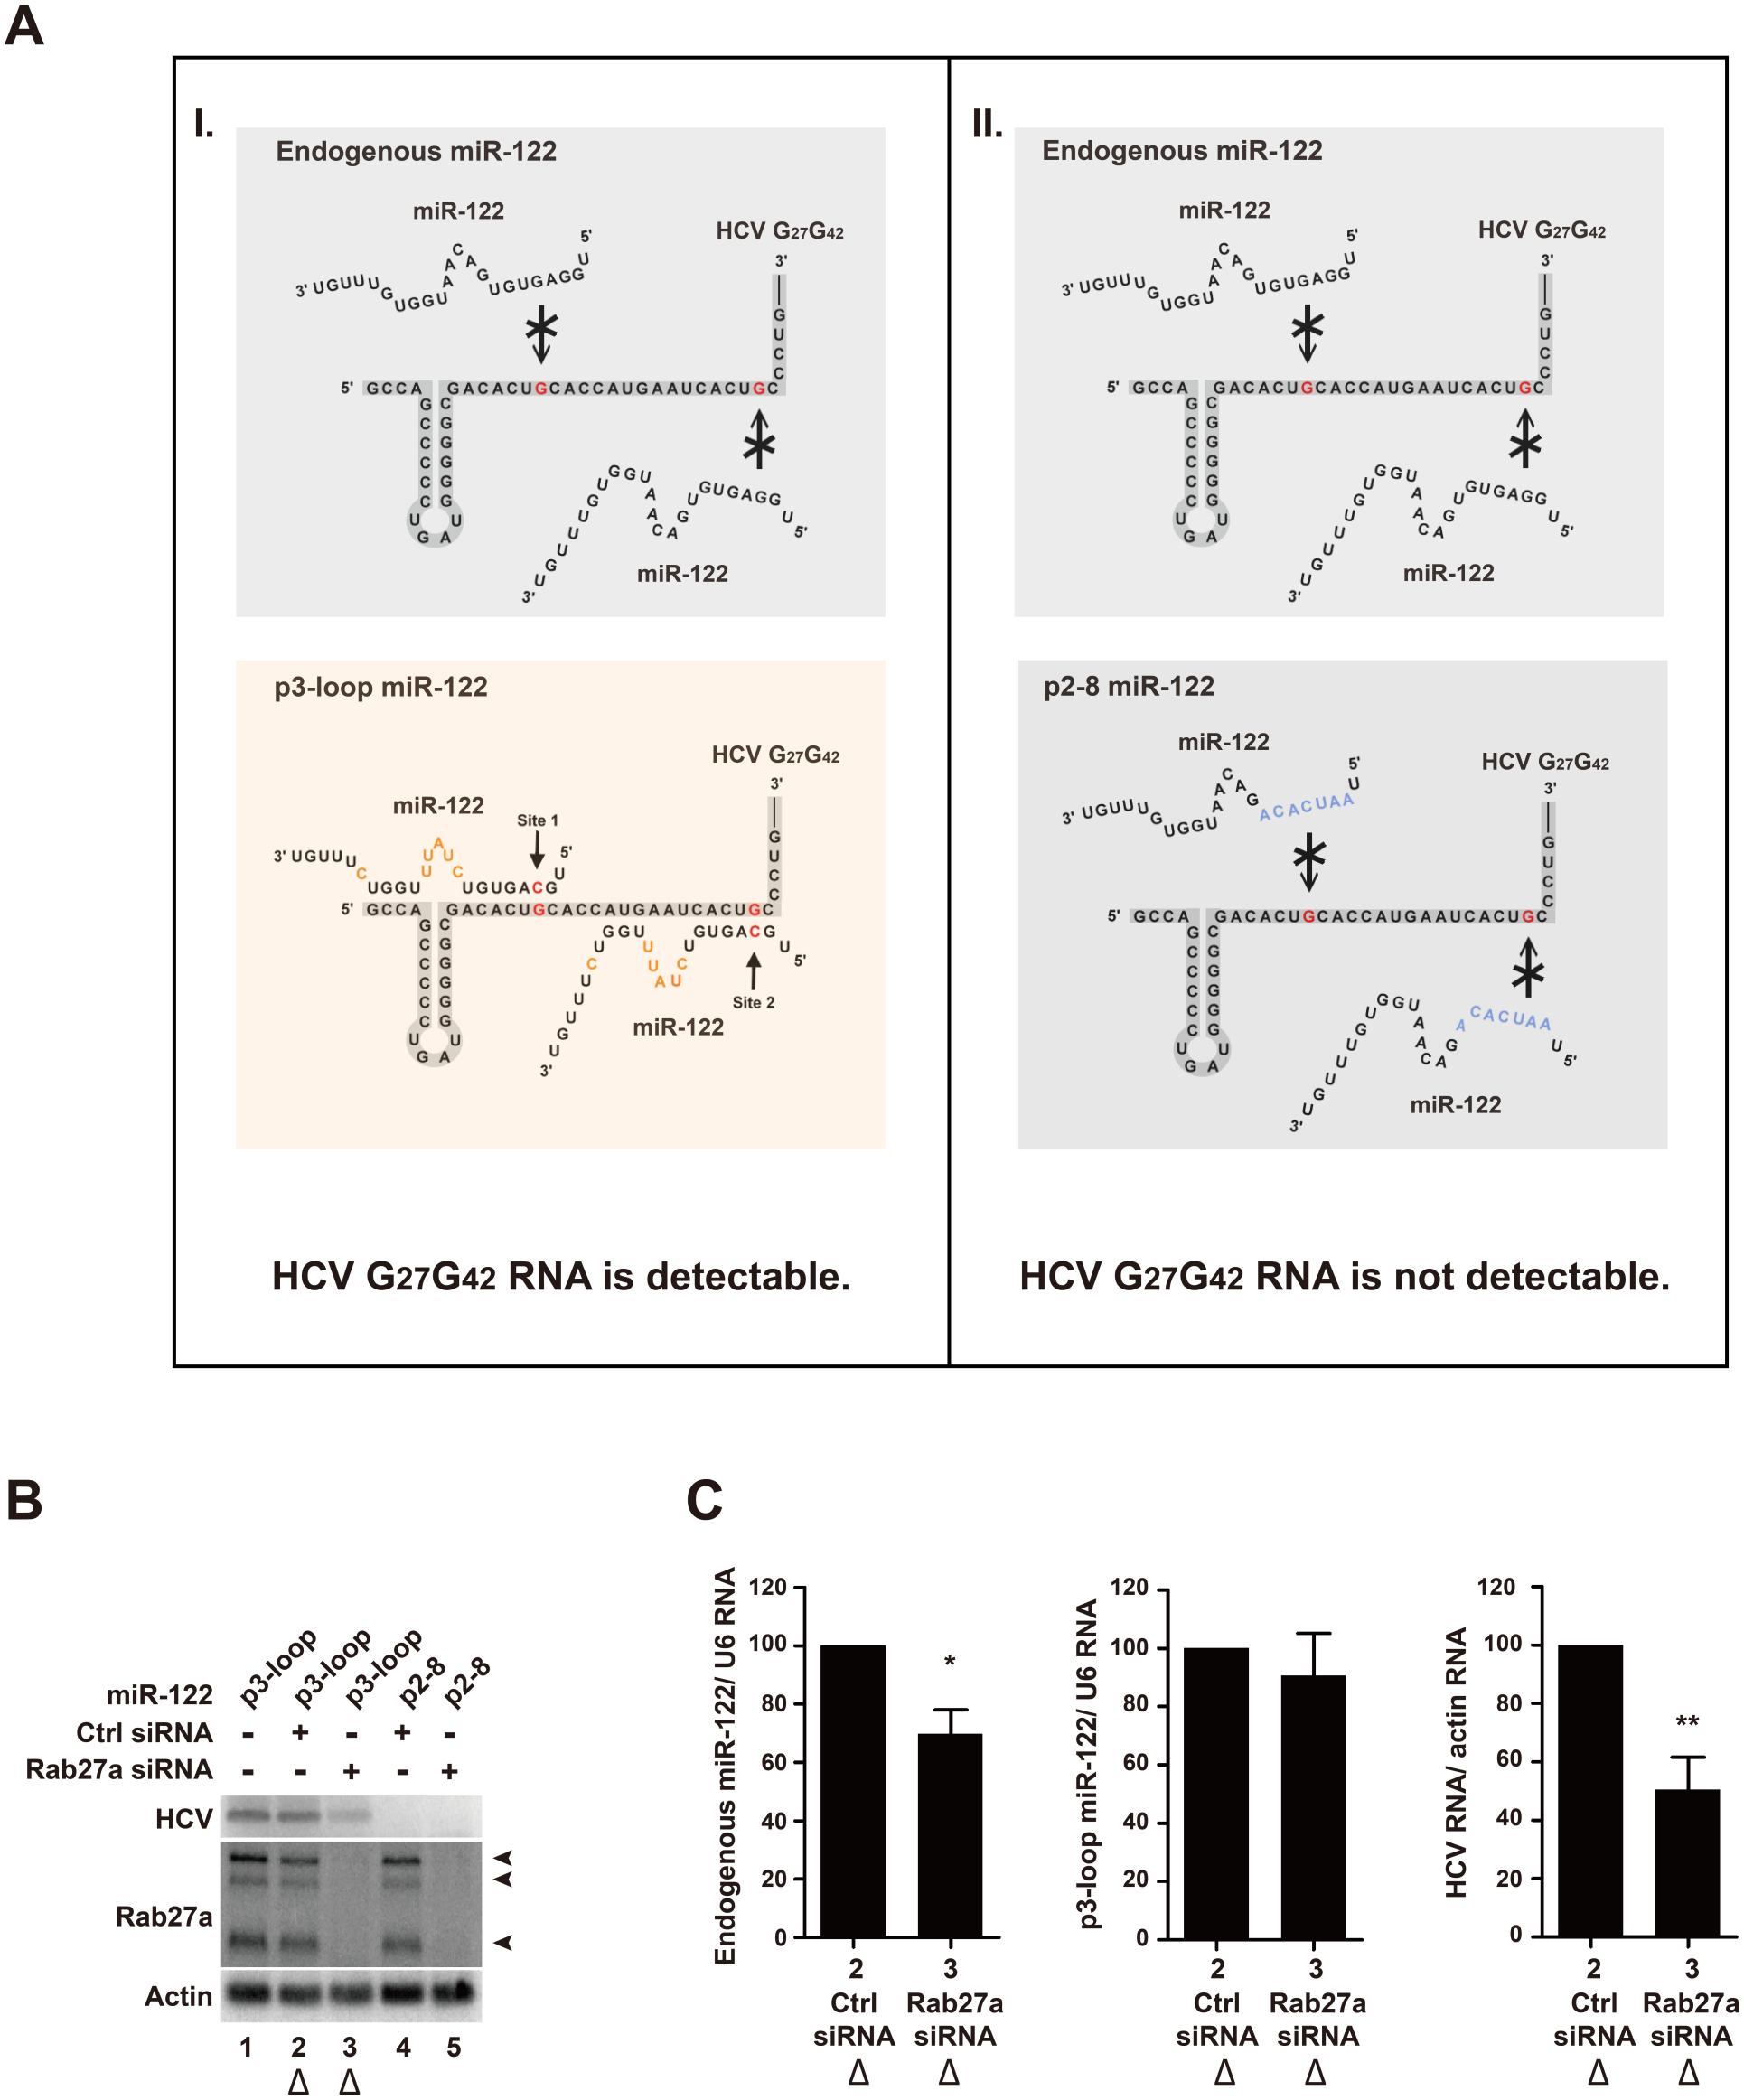 Effects of Rab27a depletion on HCV RNA abundance are independent of the 5' terminal miR-122:HCV complex.